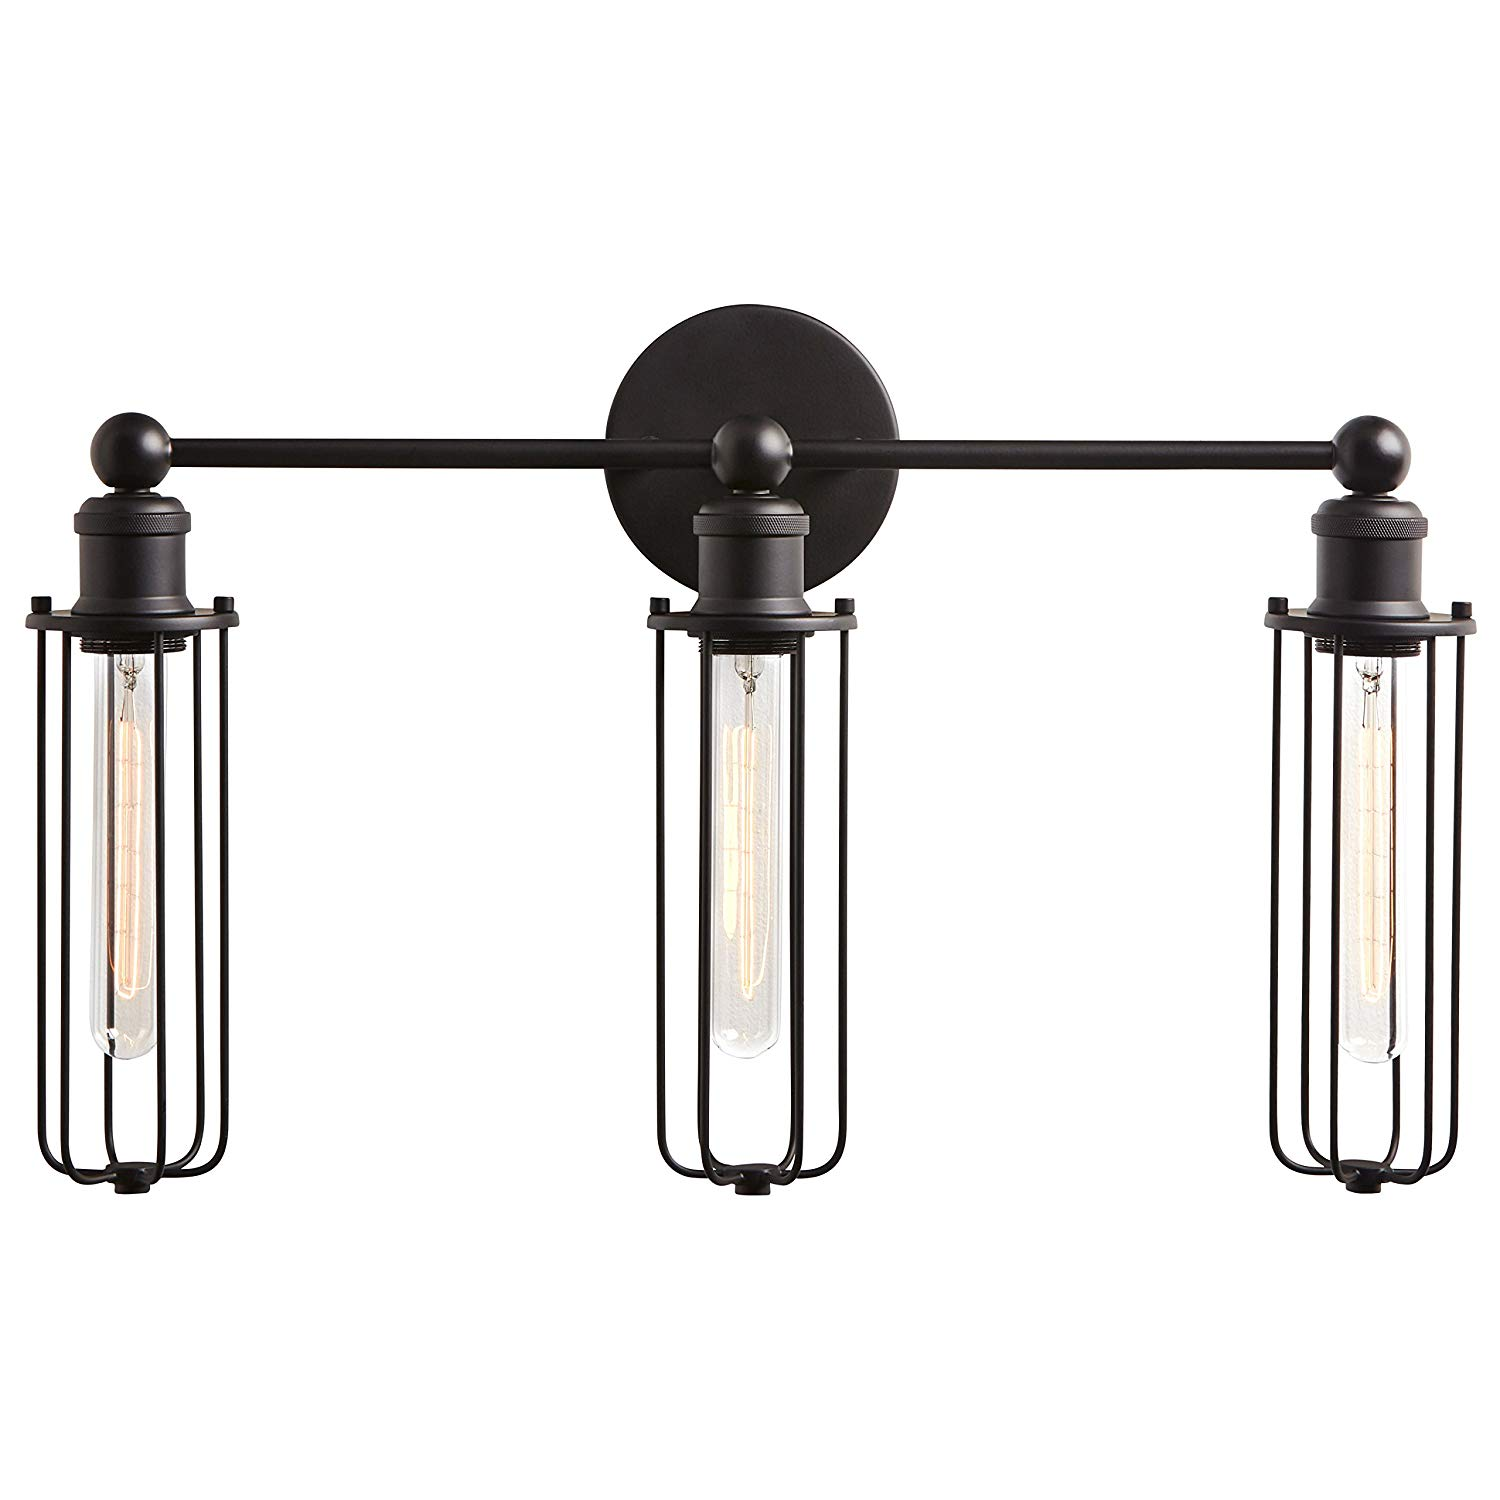 If you want a more modern farmhouse style in your house then these Rivet Industrial Modern 3 Light Bathroom Wall Vanity Sconce are sure to bring it!